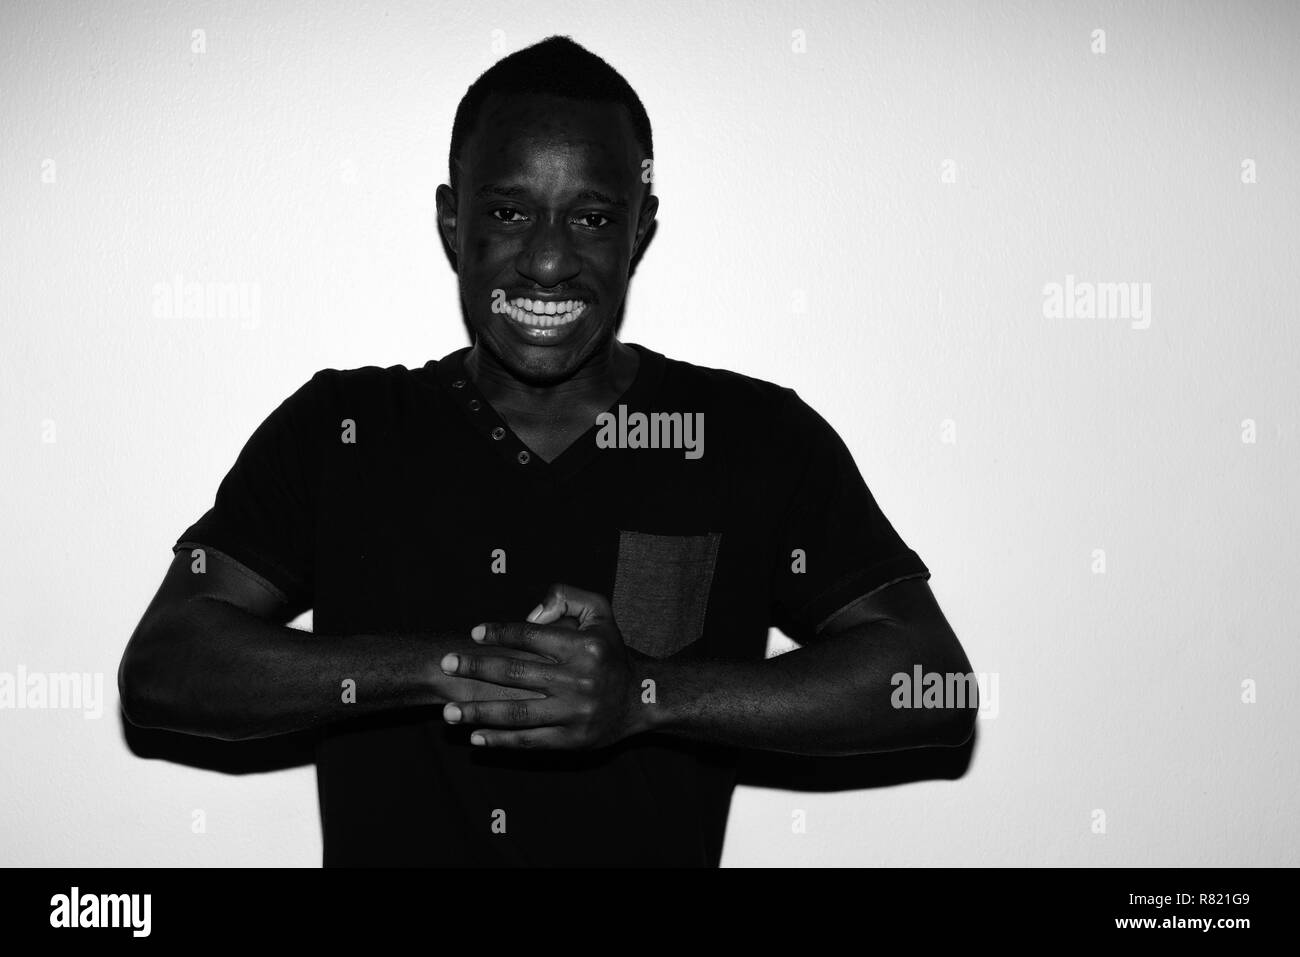 Spooky horror portrait of young angry African man in black and white - Stock Image